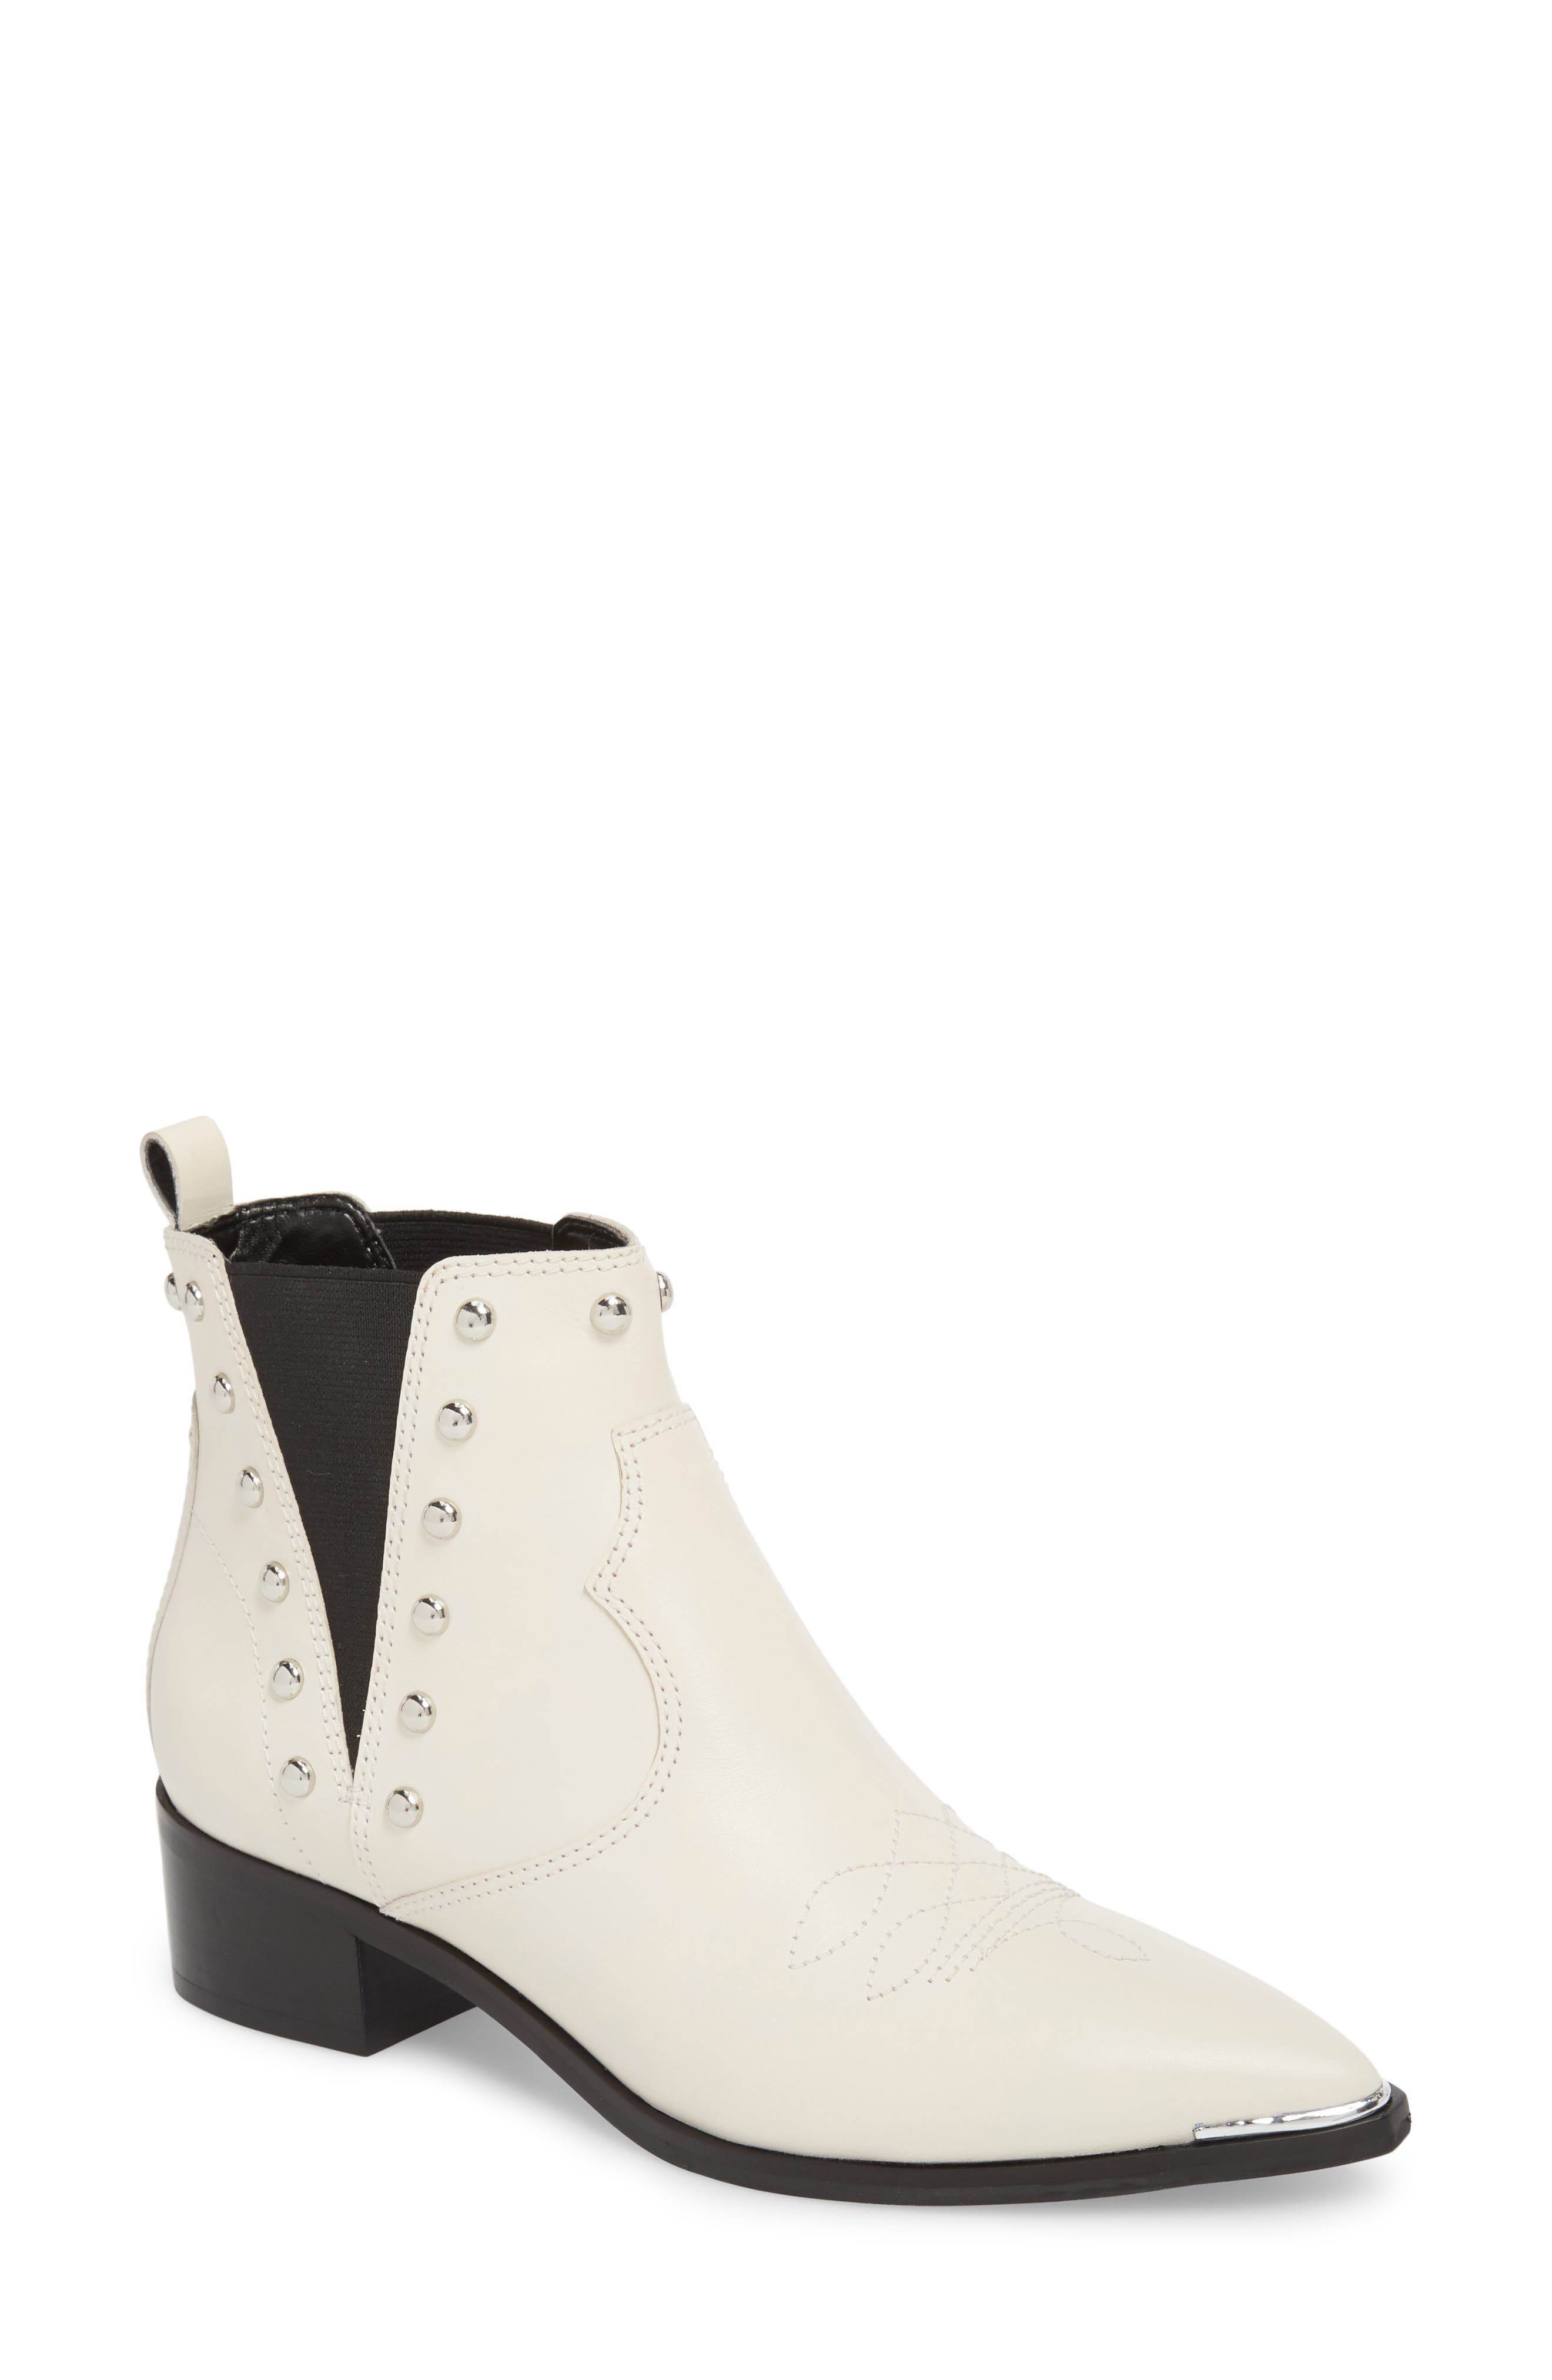 Yente Chelsea Boot,                             Main thumbnail 1, color,                             IVORY LEATHER